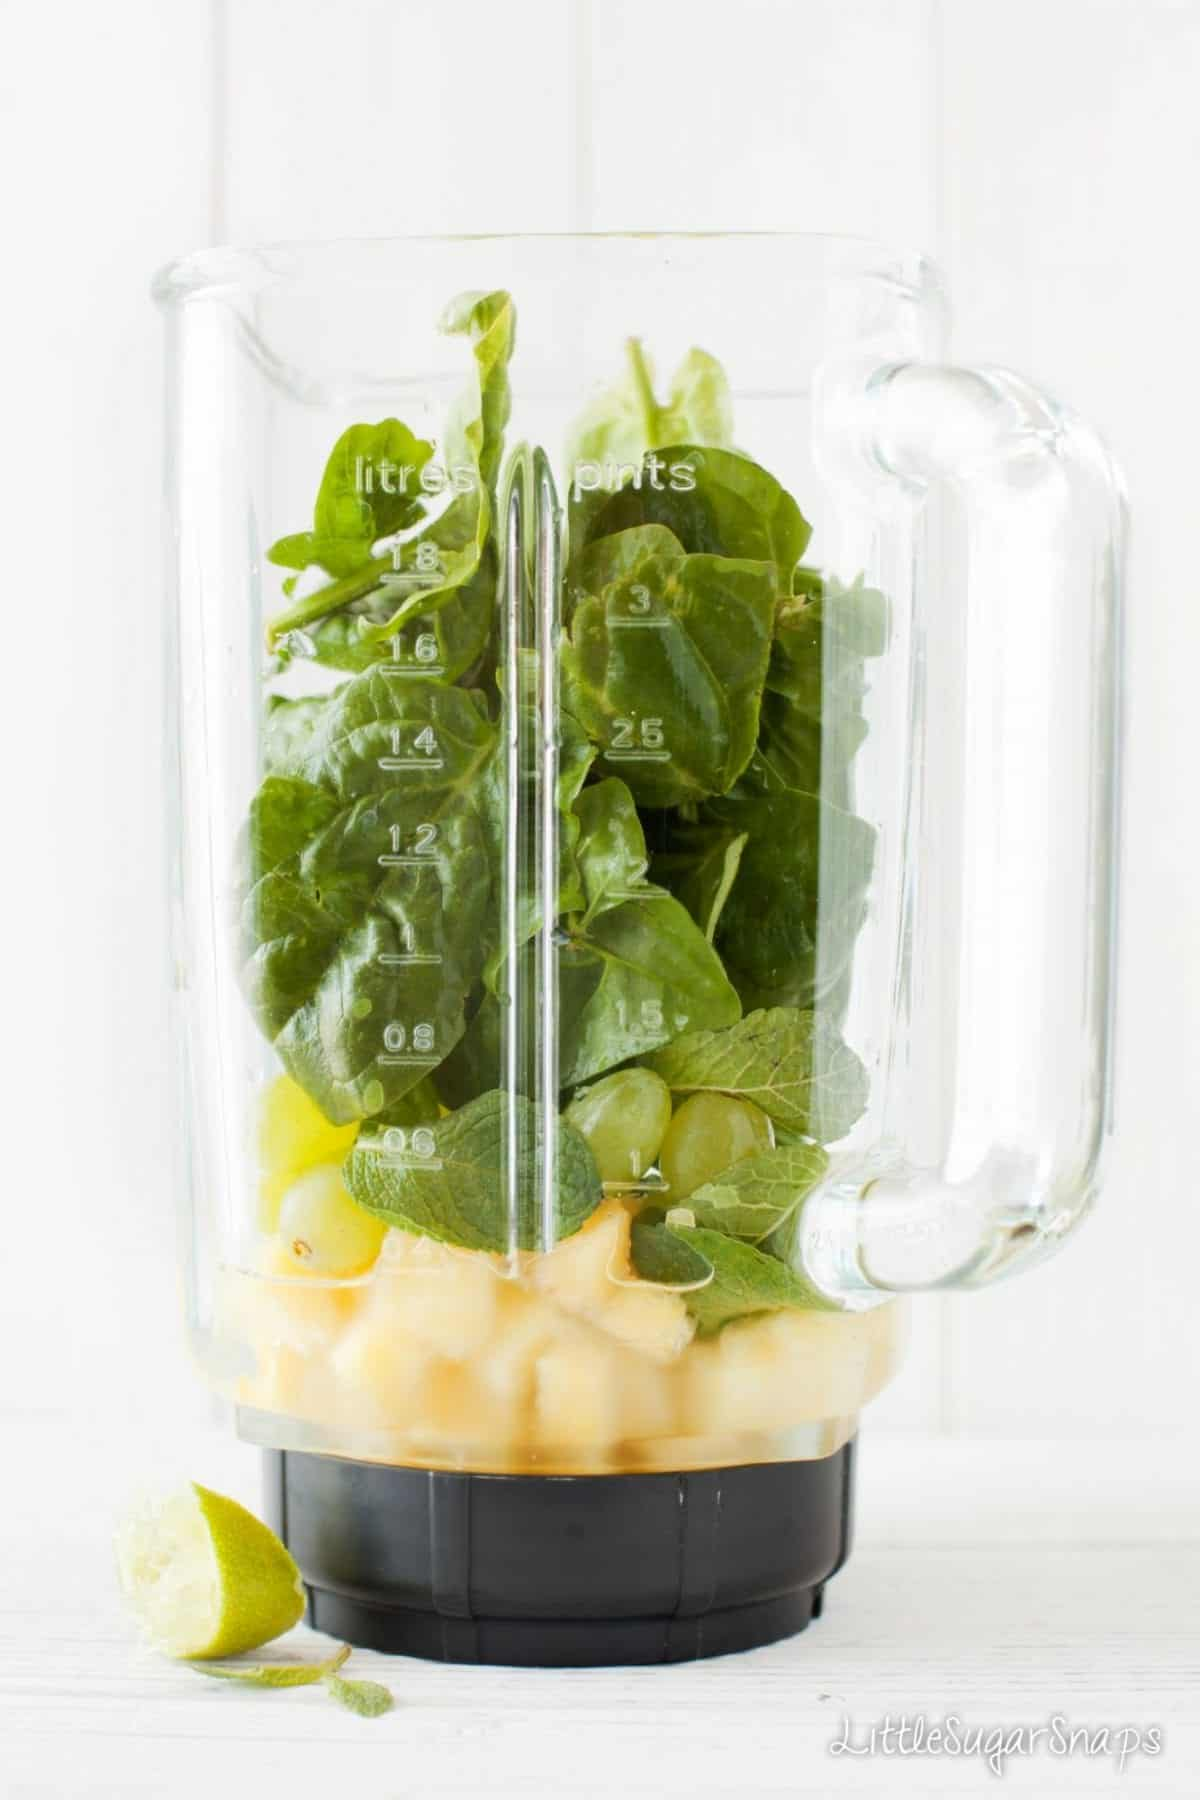 A blender jug filled with smoothie ingredients - mint, pineapple & grapes